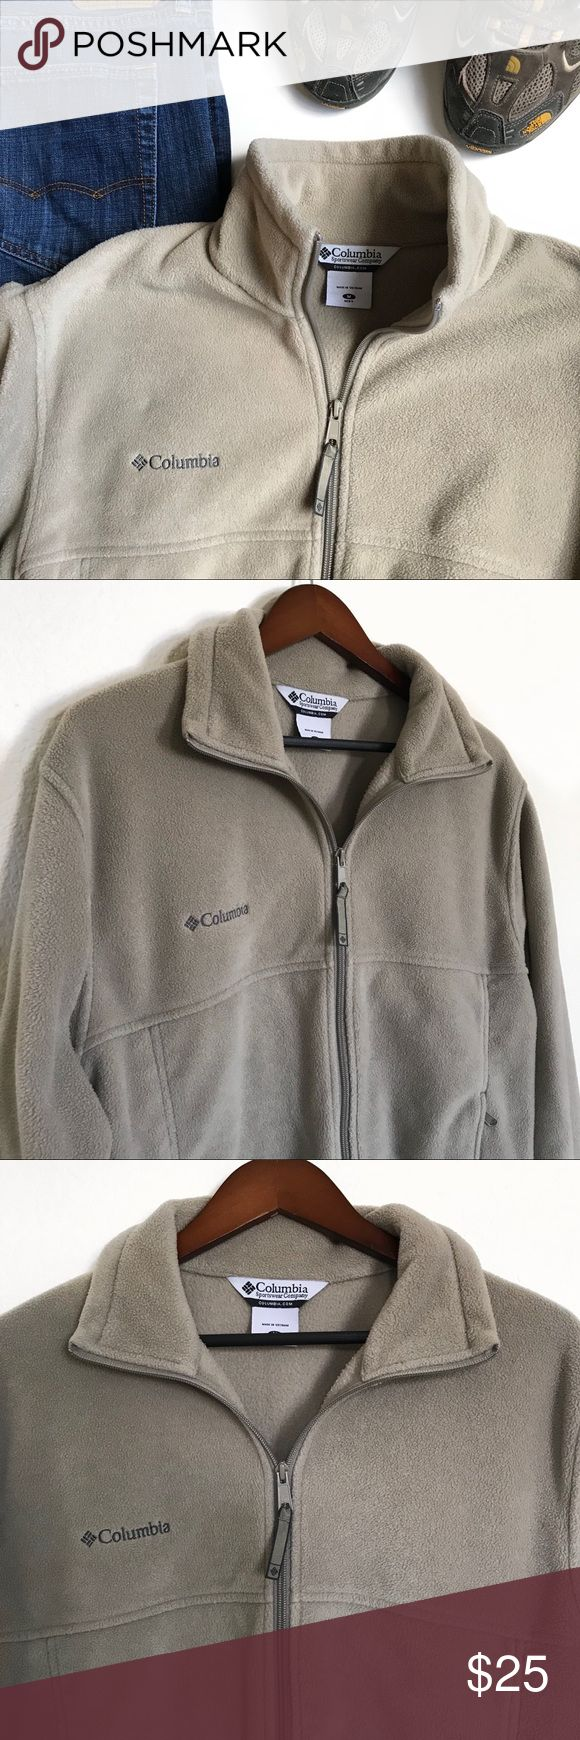 Colombia Men's Steens Mountain Fleece tusk Jacket • Description/details: Colombia Men's Steens Mountain Fleece tusk Jacket   • Nonsmoking home  • Size: M • Materials: 100% Polyester  • Flat lay Measurements:    - Bust 46 inches   - Shoulders 20 inches   - Length 26 (high point shoulder to hem)     - Sleeves 34 (measured from center neck to wrist hem) inches  • For any additional measurements or questions please leave a comment below Columbia Jackets & Coats